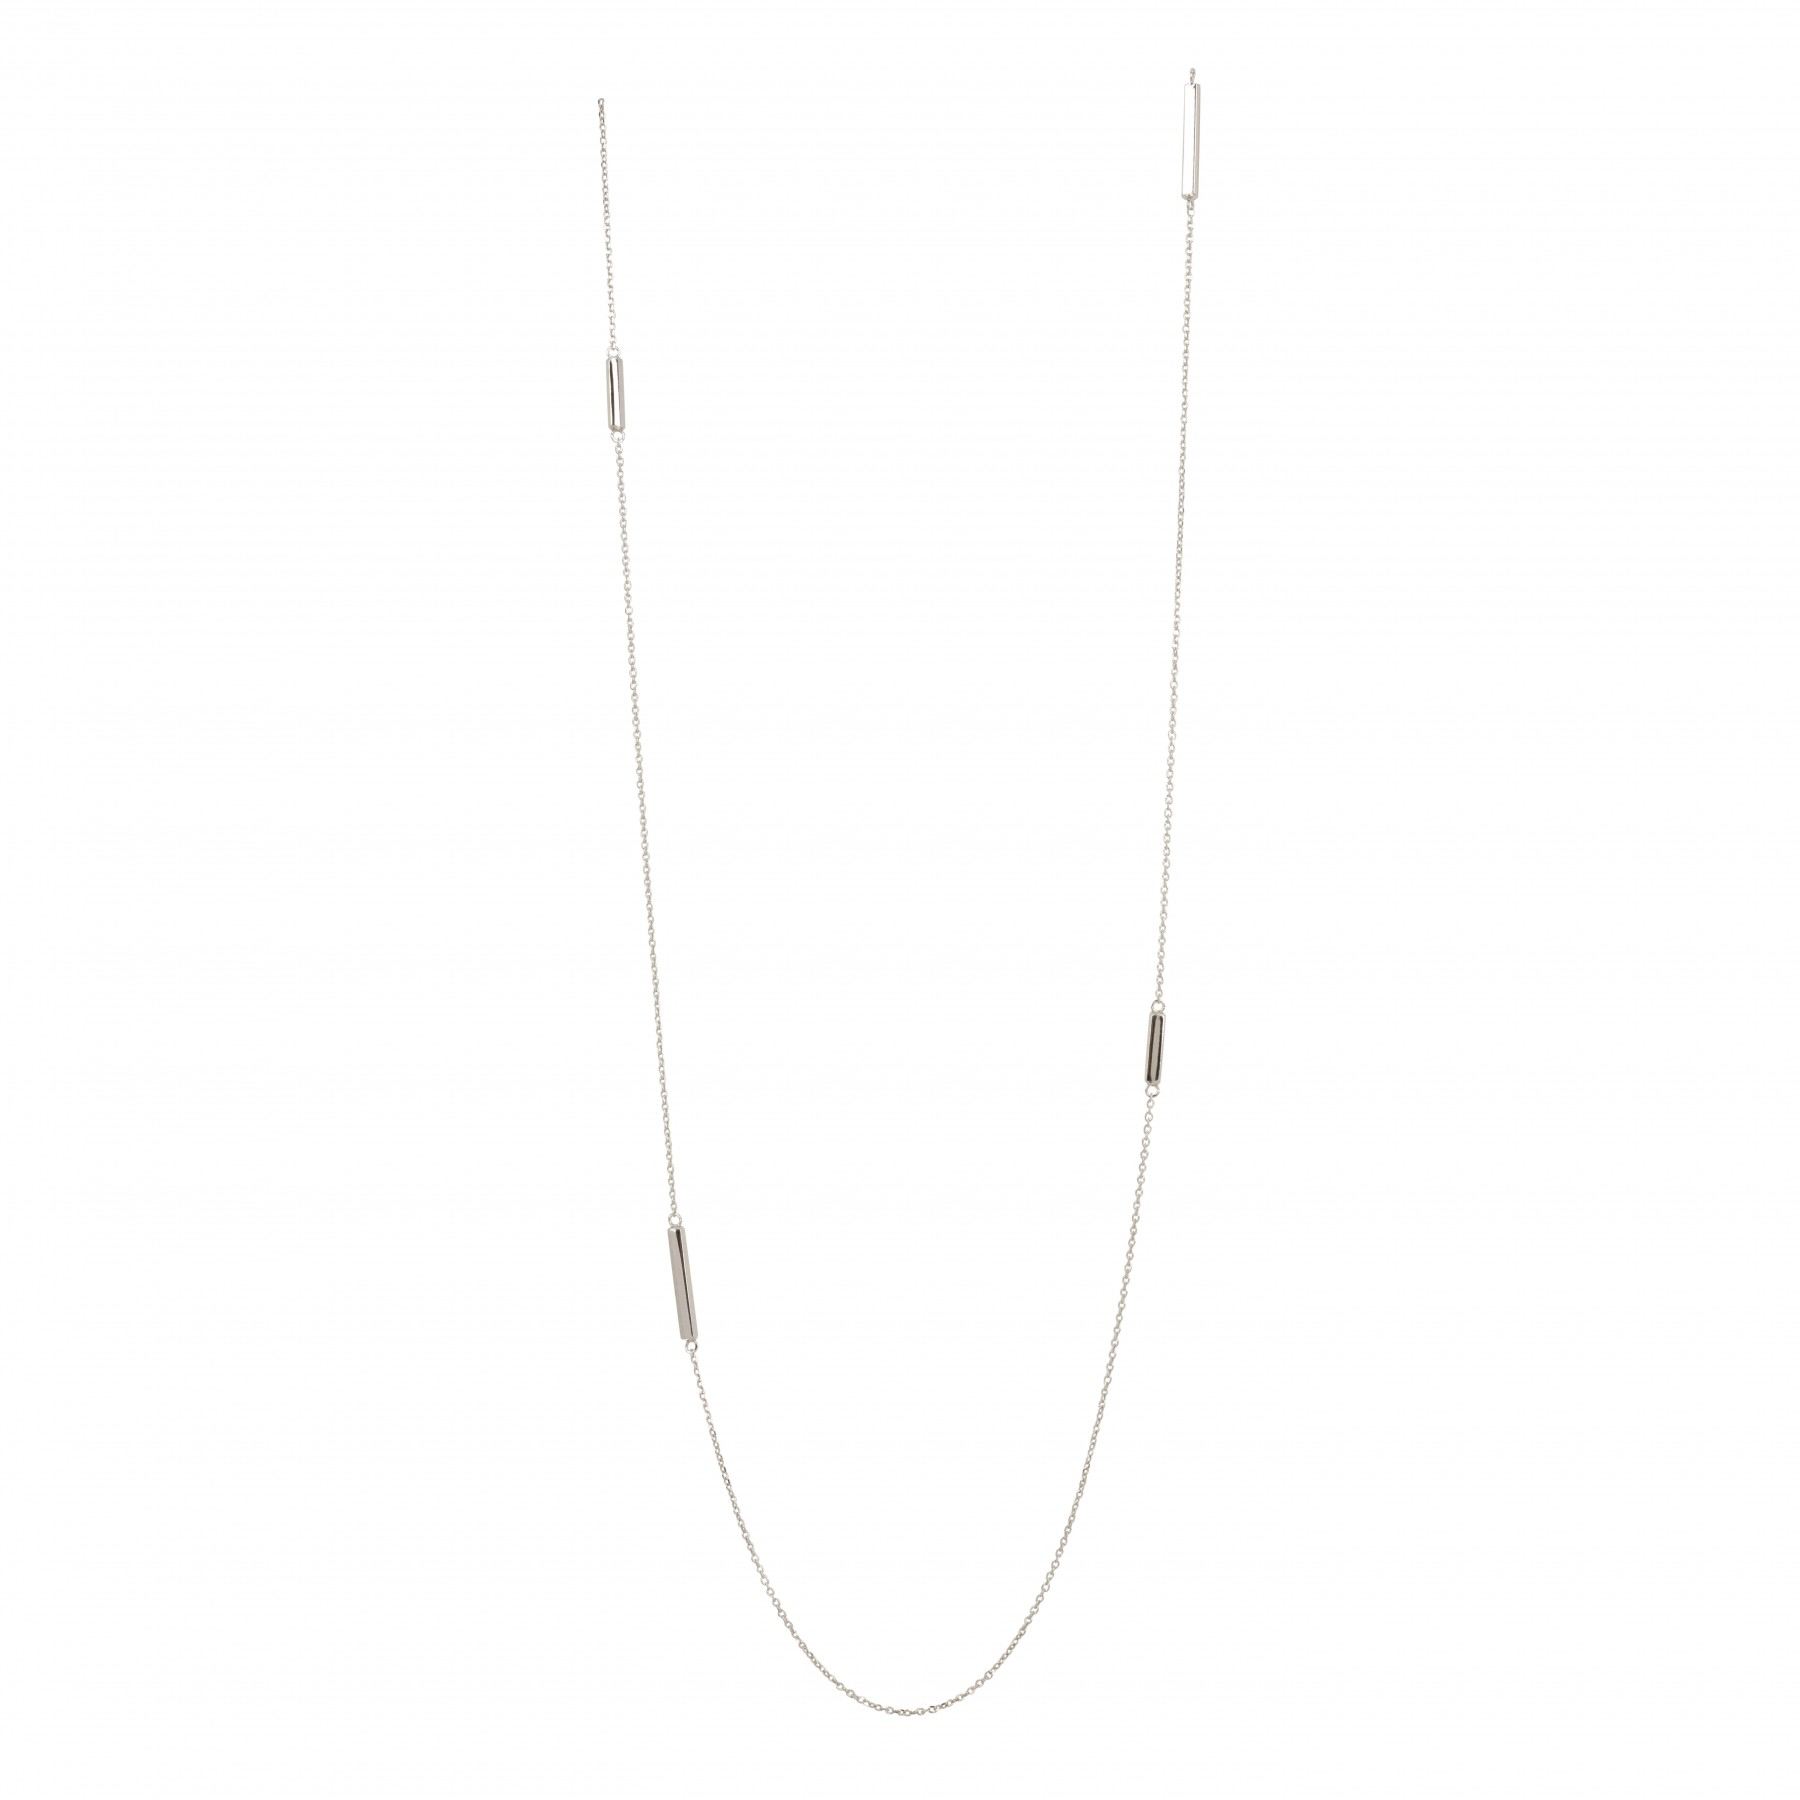 Love Notes  Ketting 'City' zilver 87 cm 102.0573.87